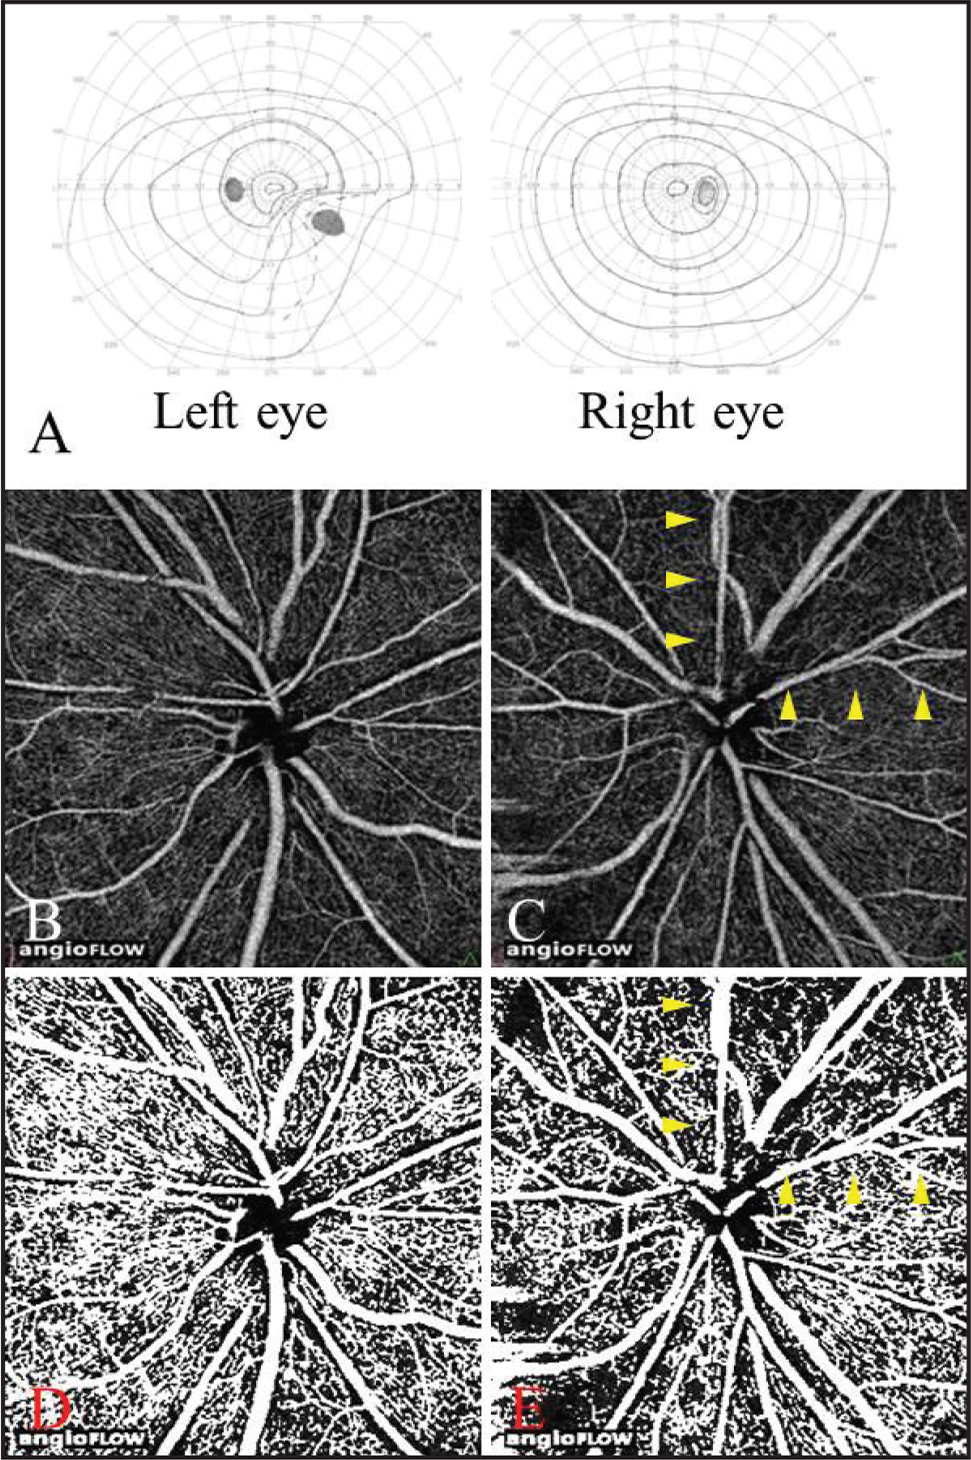 Visual field (VF) findings and optical coherence tomography (OCT) angiograms in Case 3. A 57-year-old female patient with meningioma. The patient underwent tumor resection 40 months prior to this study. VF findings of Goldmann perimetry (A). A lower nasal VF defect was detected in the left eye. OCT angiograms of the disc of the right eye (B) and of the left eye (C). The retinal perfusion was decreased in the upper temporal retina (arrowhead) in the left eye. Binarized OCT angiograms of the disc of the right eye (D) and of the left eye (E). The retinal perfusion was decreased in the upper temporal retina (arrowhead) corresponding to the quadrants of the VF defects in the left eye.